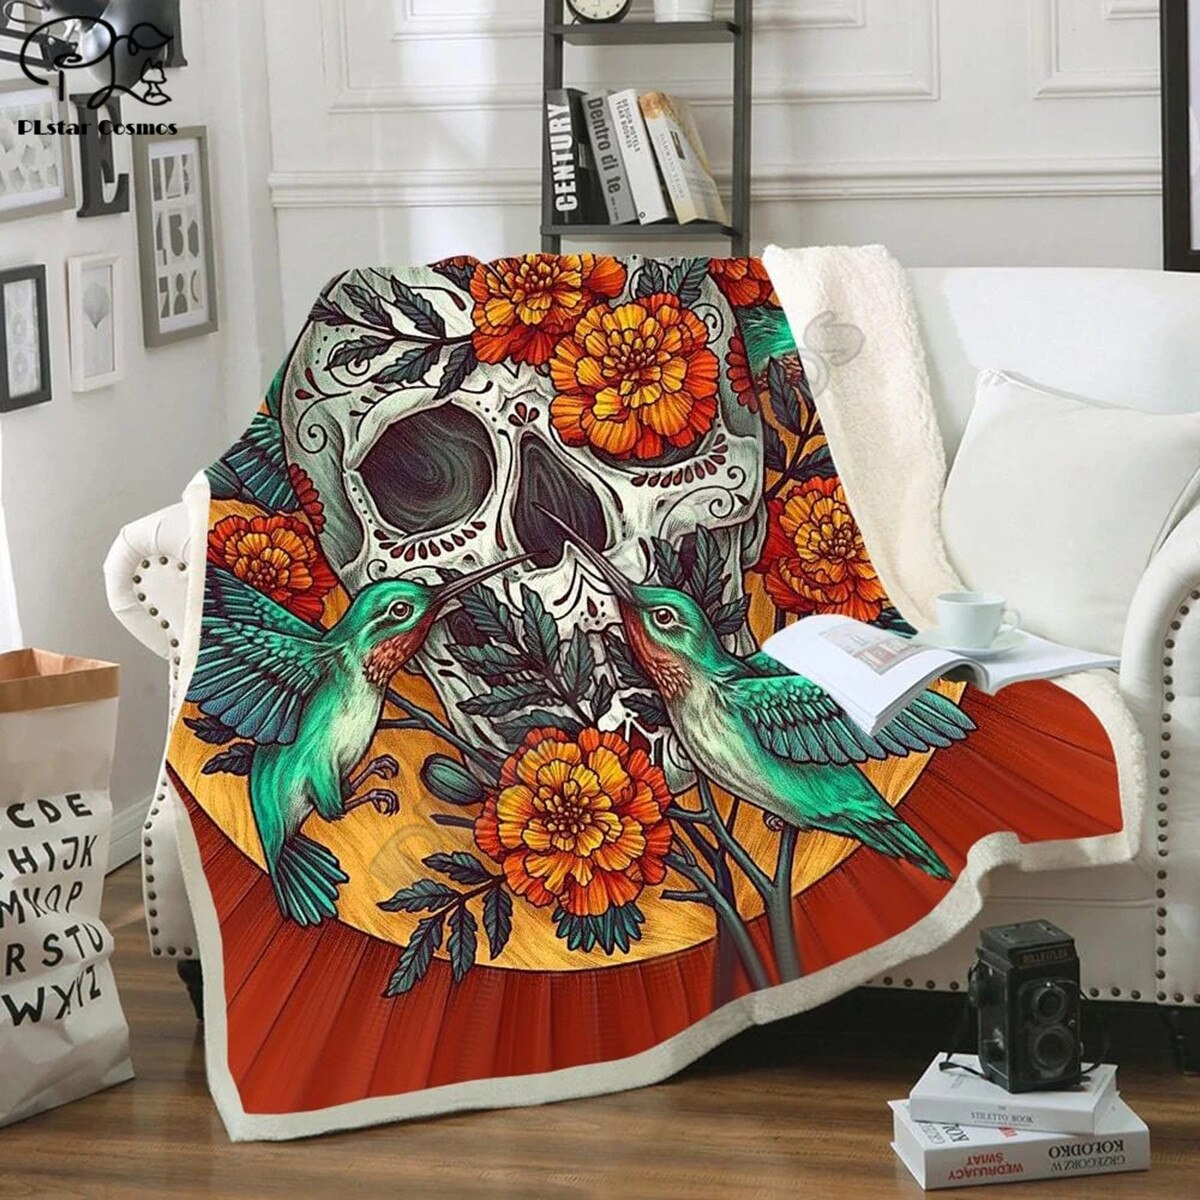 Skull And Flower Blanket 3D full printed Wearable Blanket